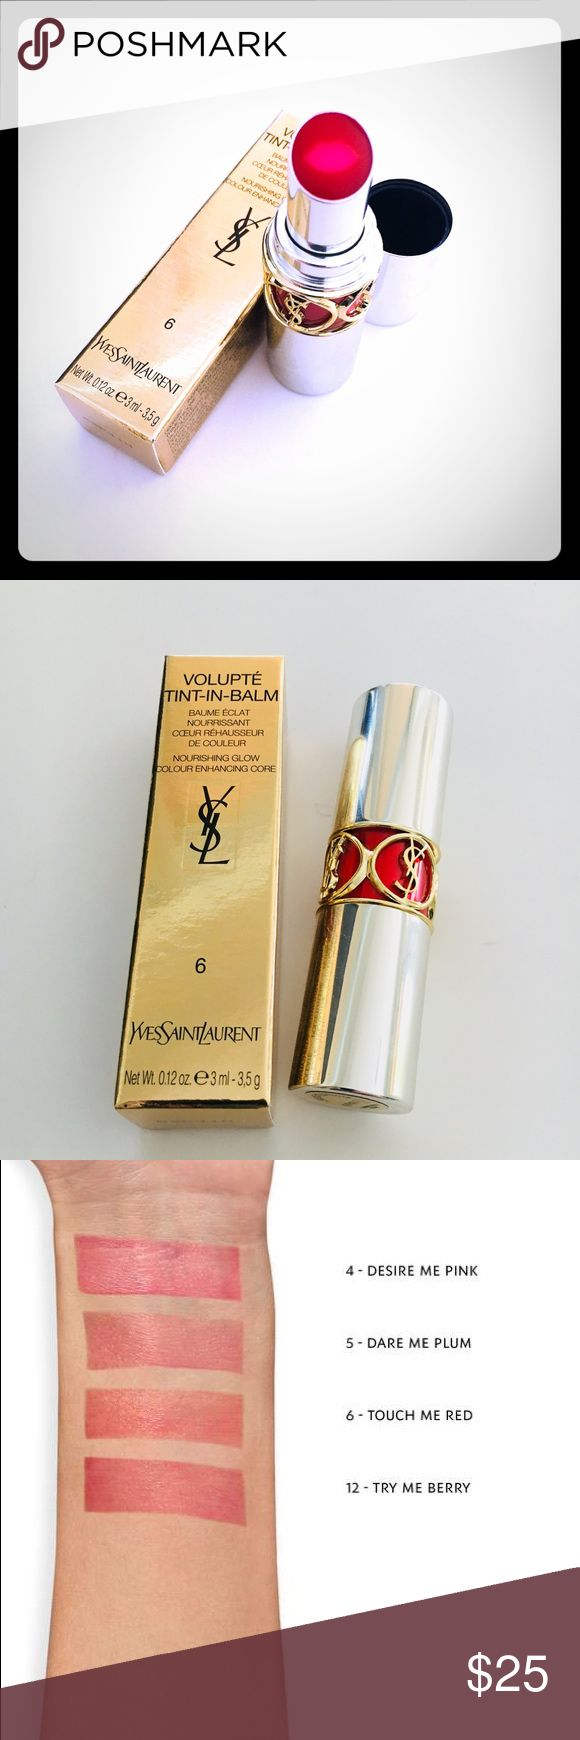 Yves Saint Laurent volupté tint in balm - red Number 6 - touch me red  What it is: A new hybrid lipstick combining melting balm care with glowing sheer color.  What it does: A unique dual formula leaves lips nourished with a lasting kiss of tint. The lip-shaped heart of the lipstick running from top to bottom delivers instant balm care. With macadamia and apricot butters, mixed with passionfruit, coriander and jojoba oils, the care is comfortable and nourishing. The outer core of the…